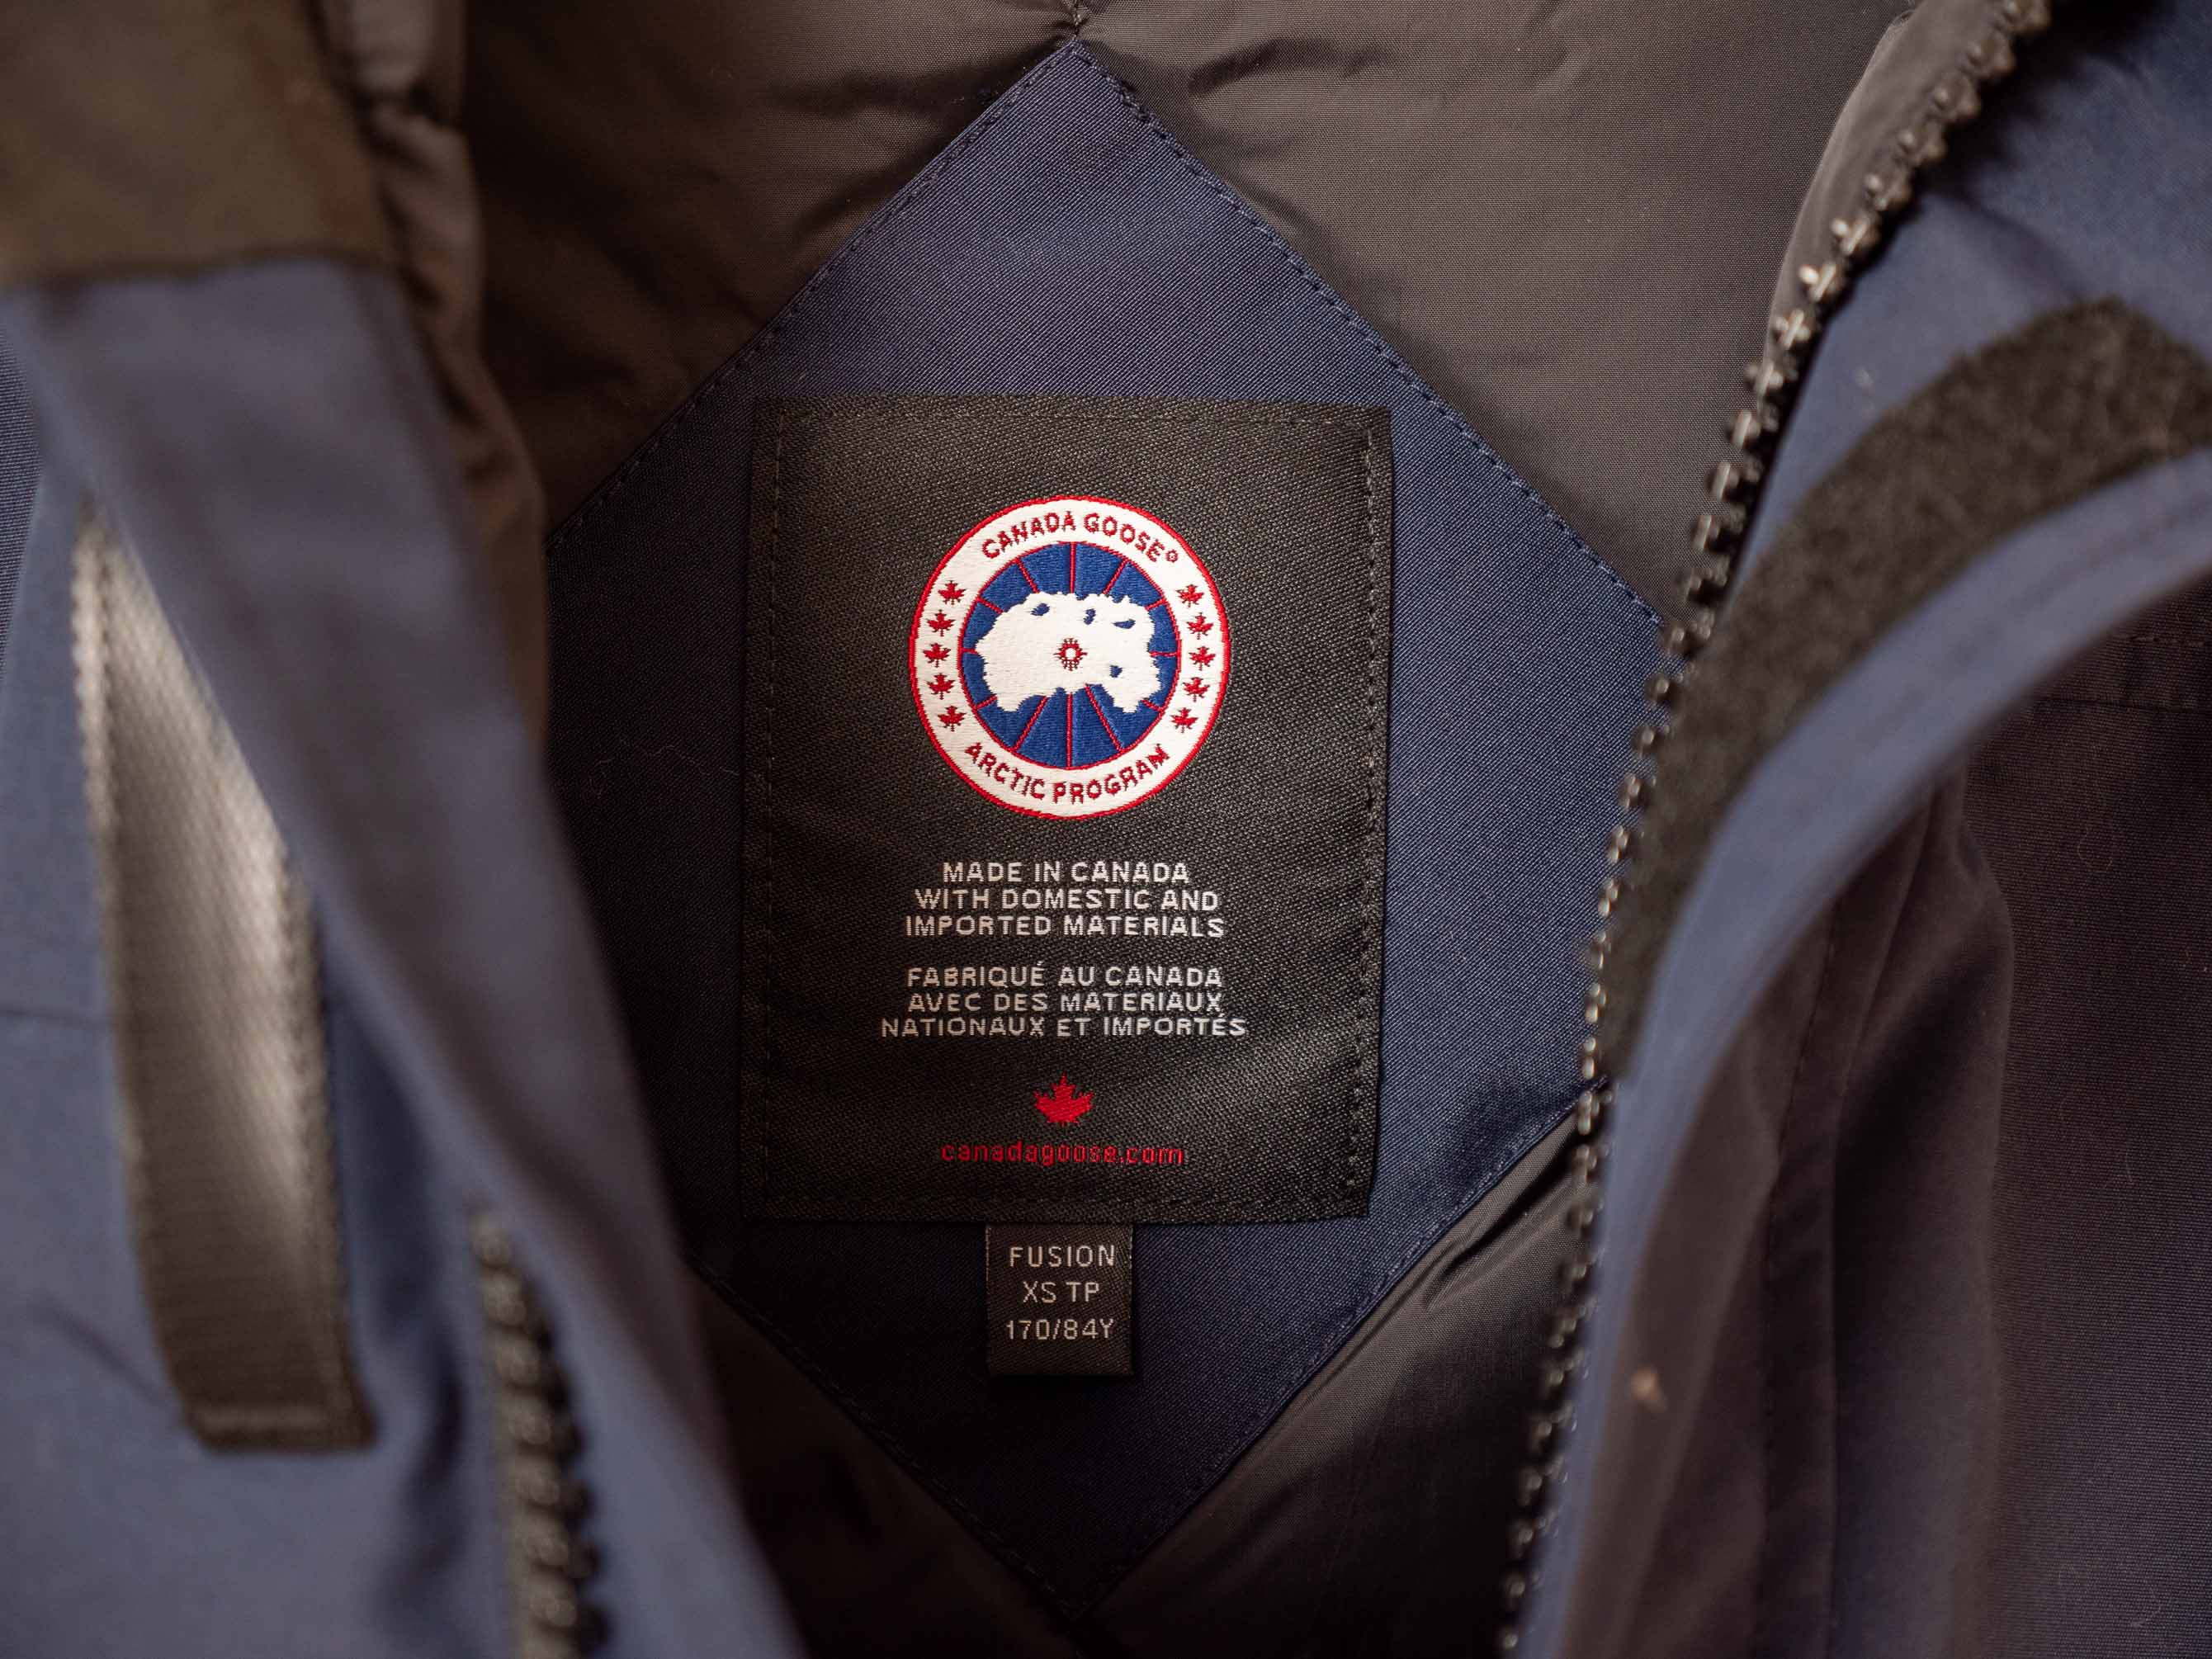 Canada Goose Fusion Fit XS